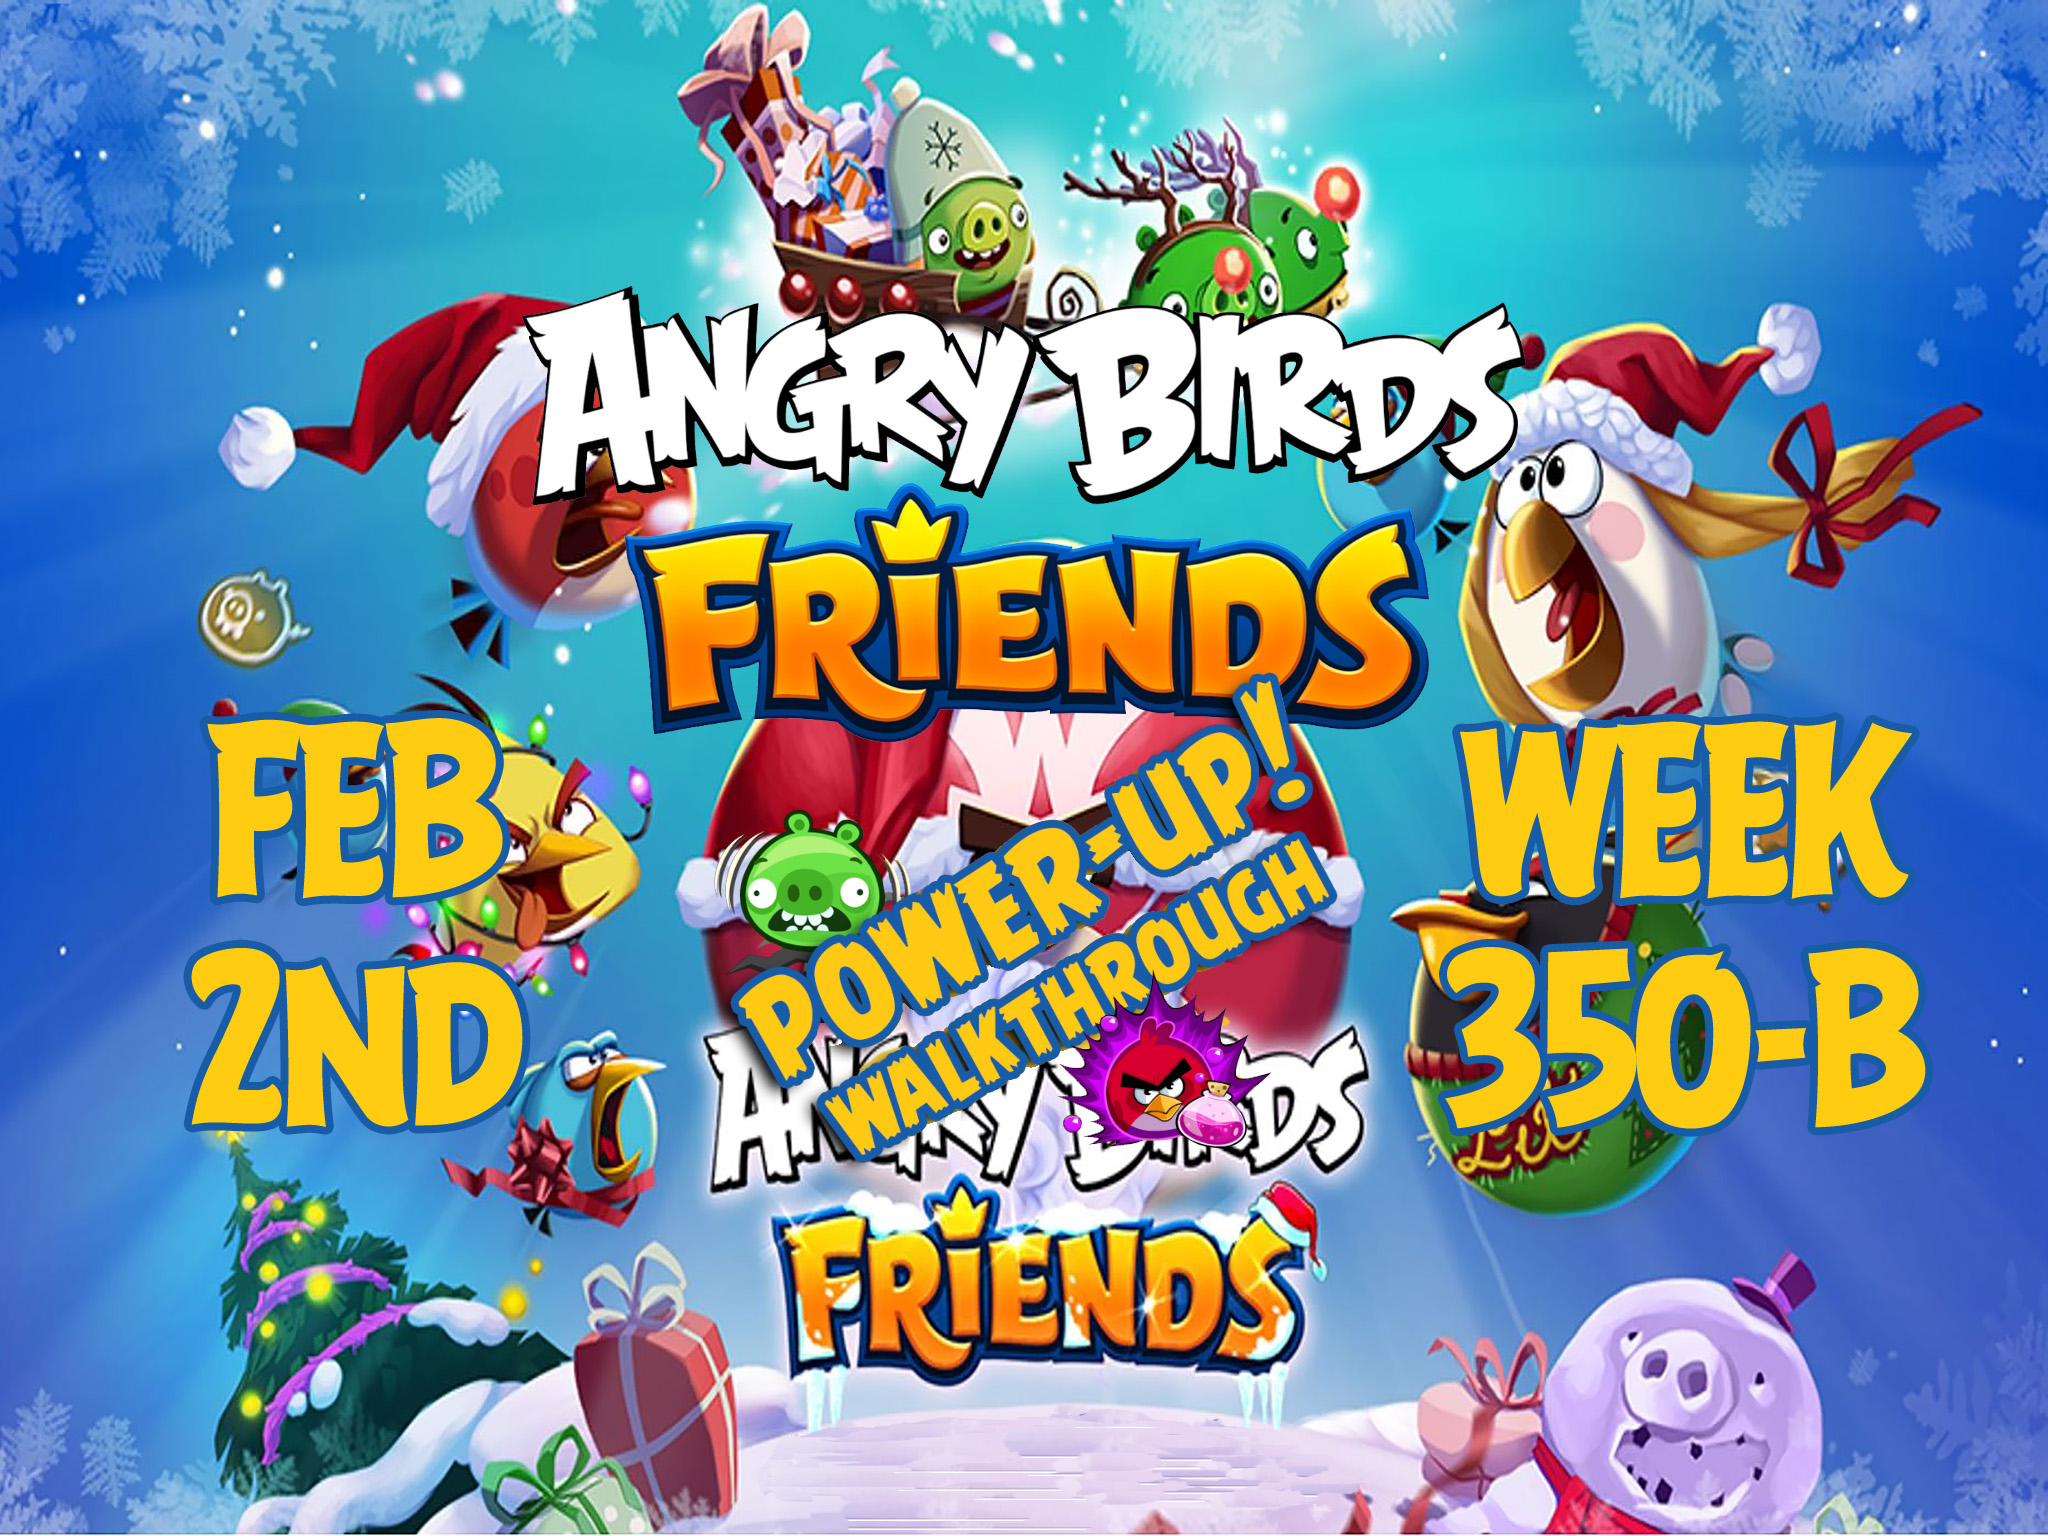 Personagem Angry Birds: Angry Birds Friends 2019 Tournament 350-B On Now